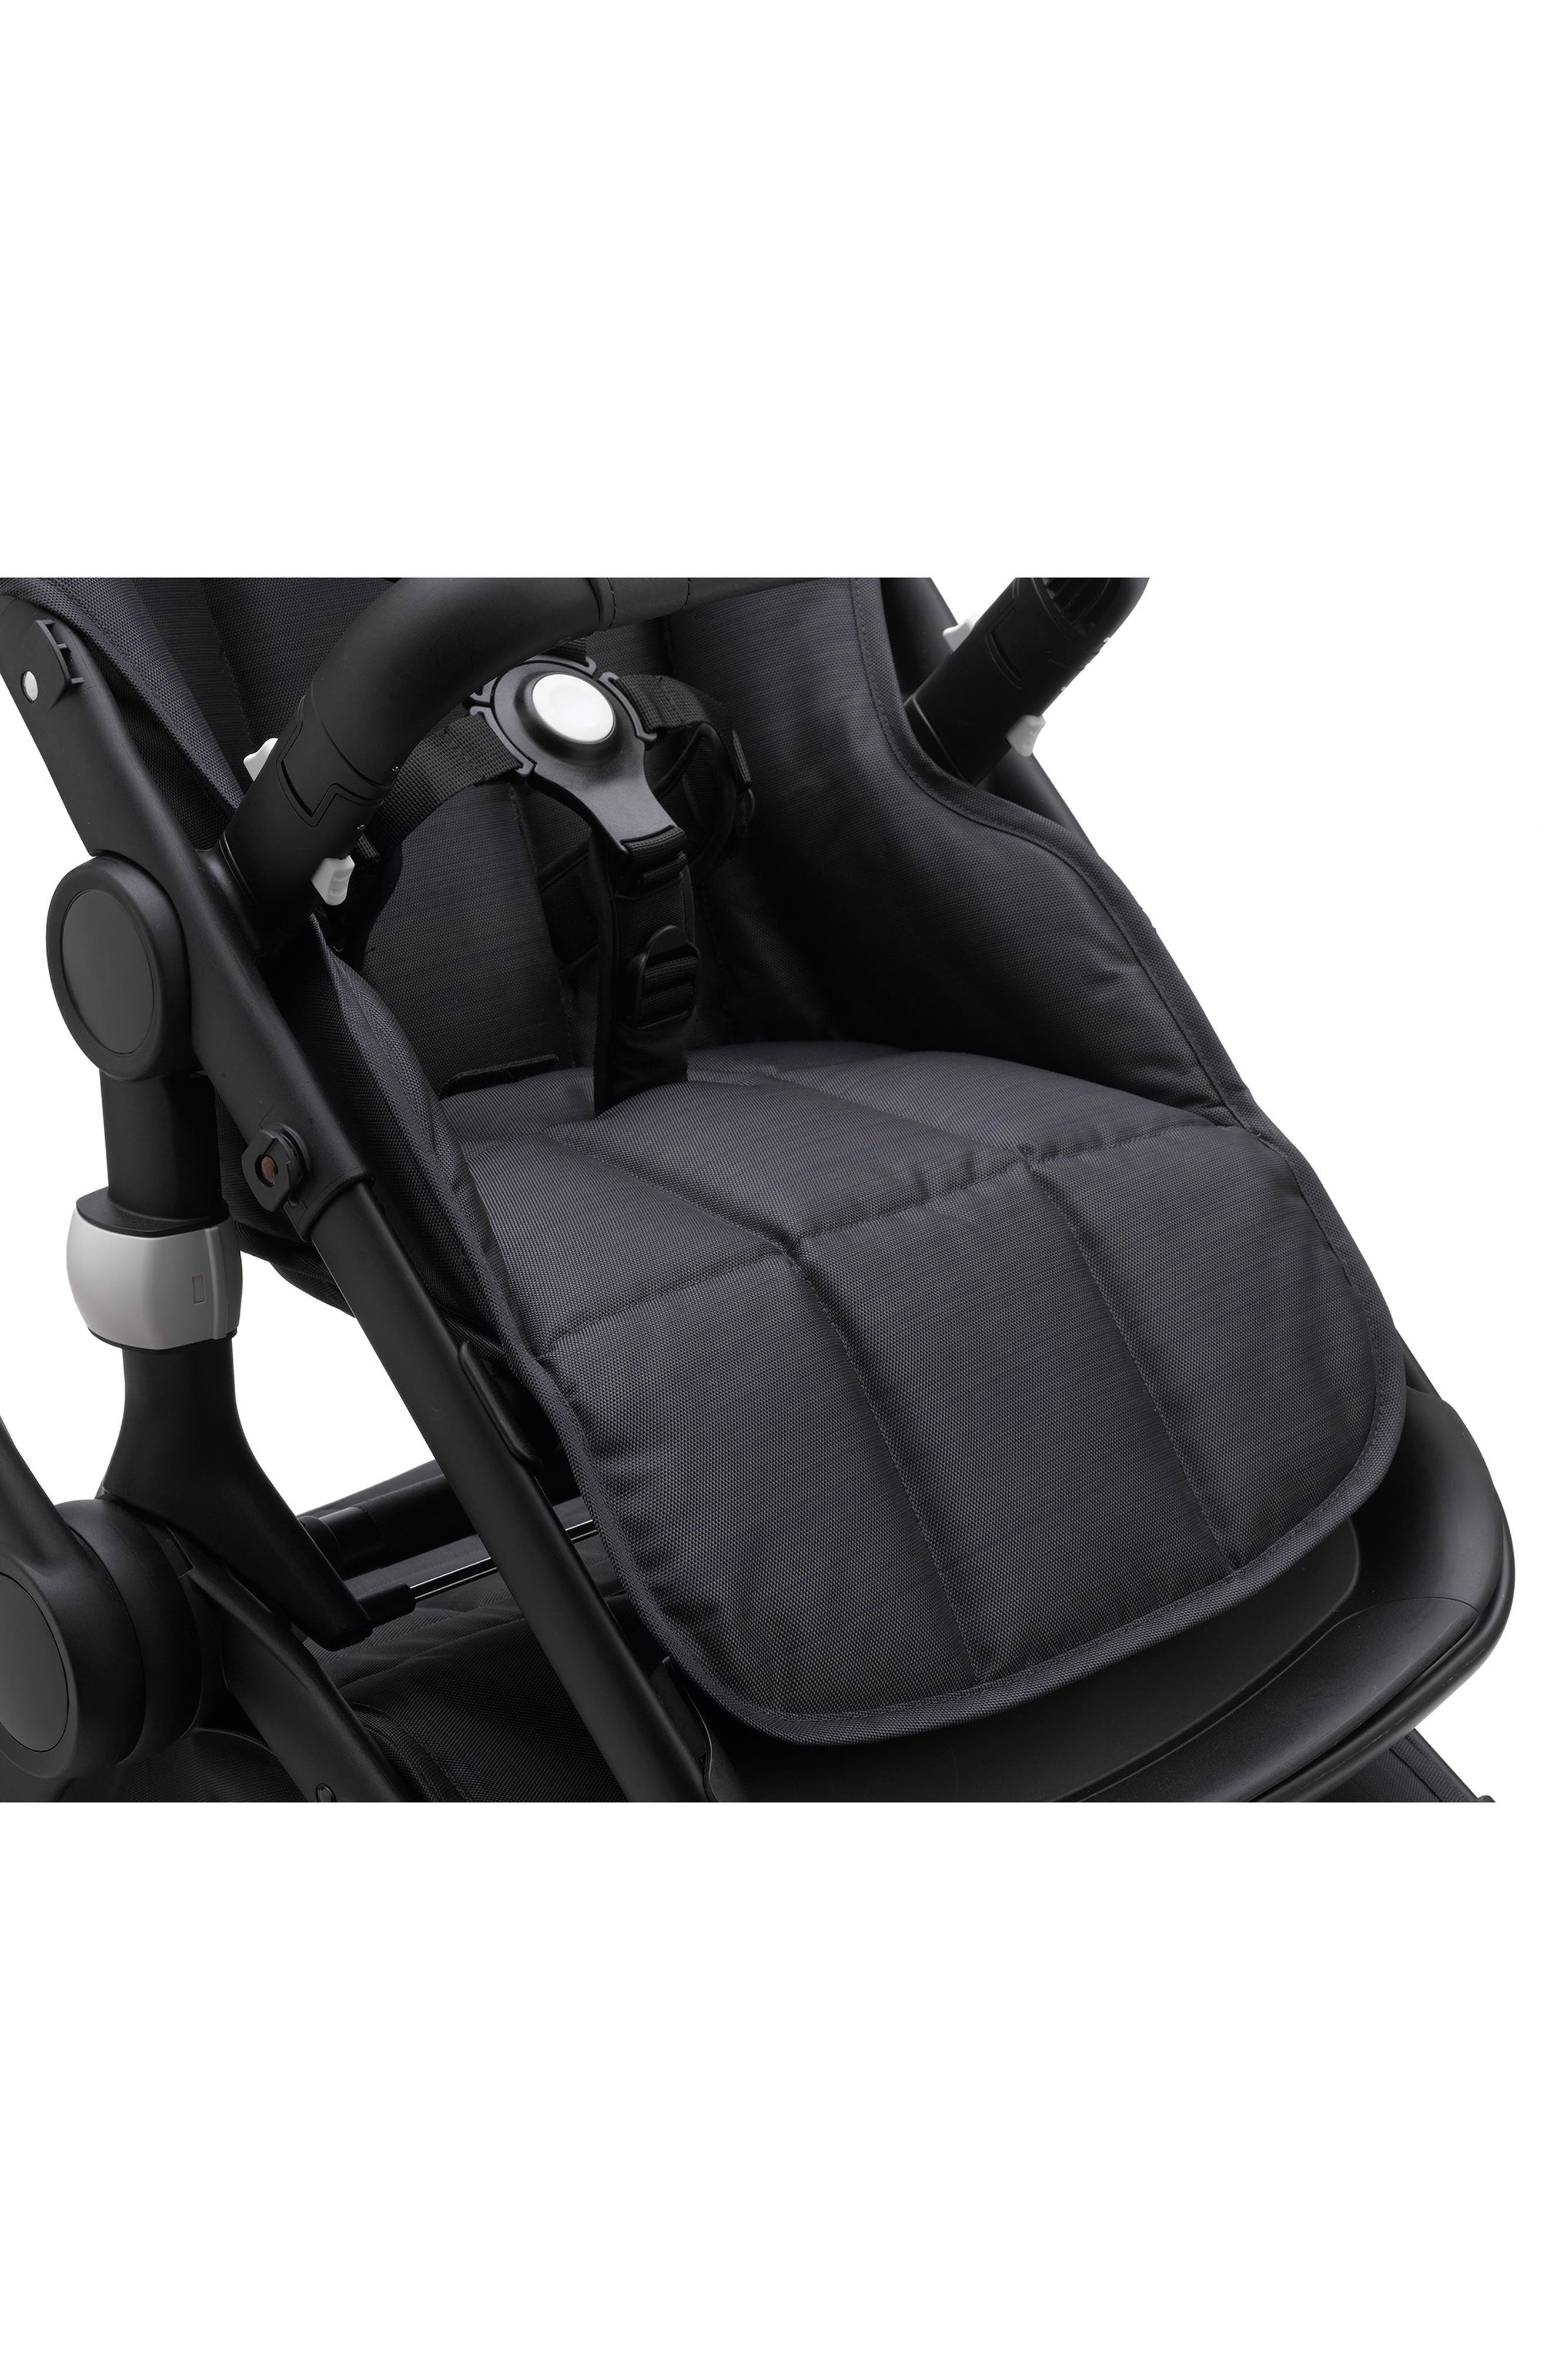 Fox Stellar Complete Reflective Stroller with Bassinet,                             Alternate thumbnail 2, color,                             MIDNIGHT BLUE